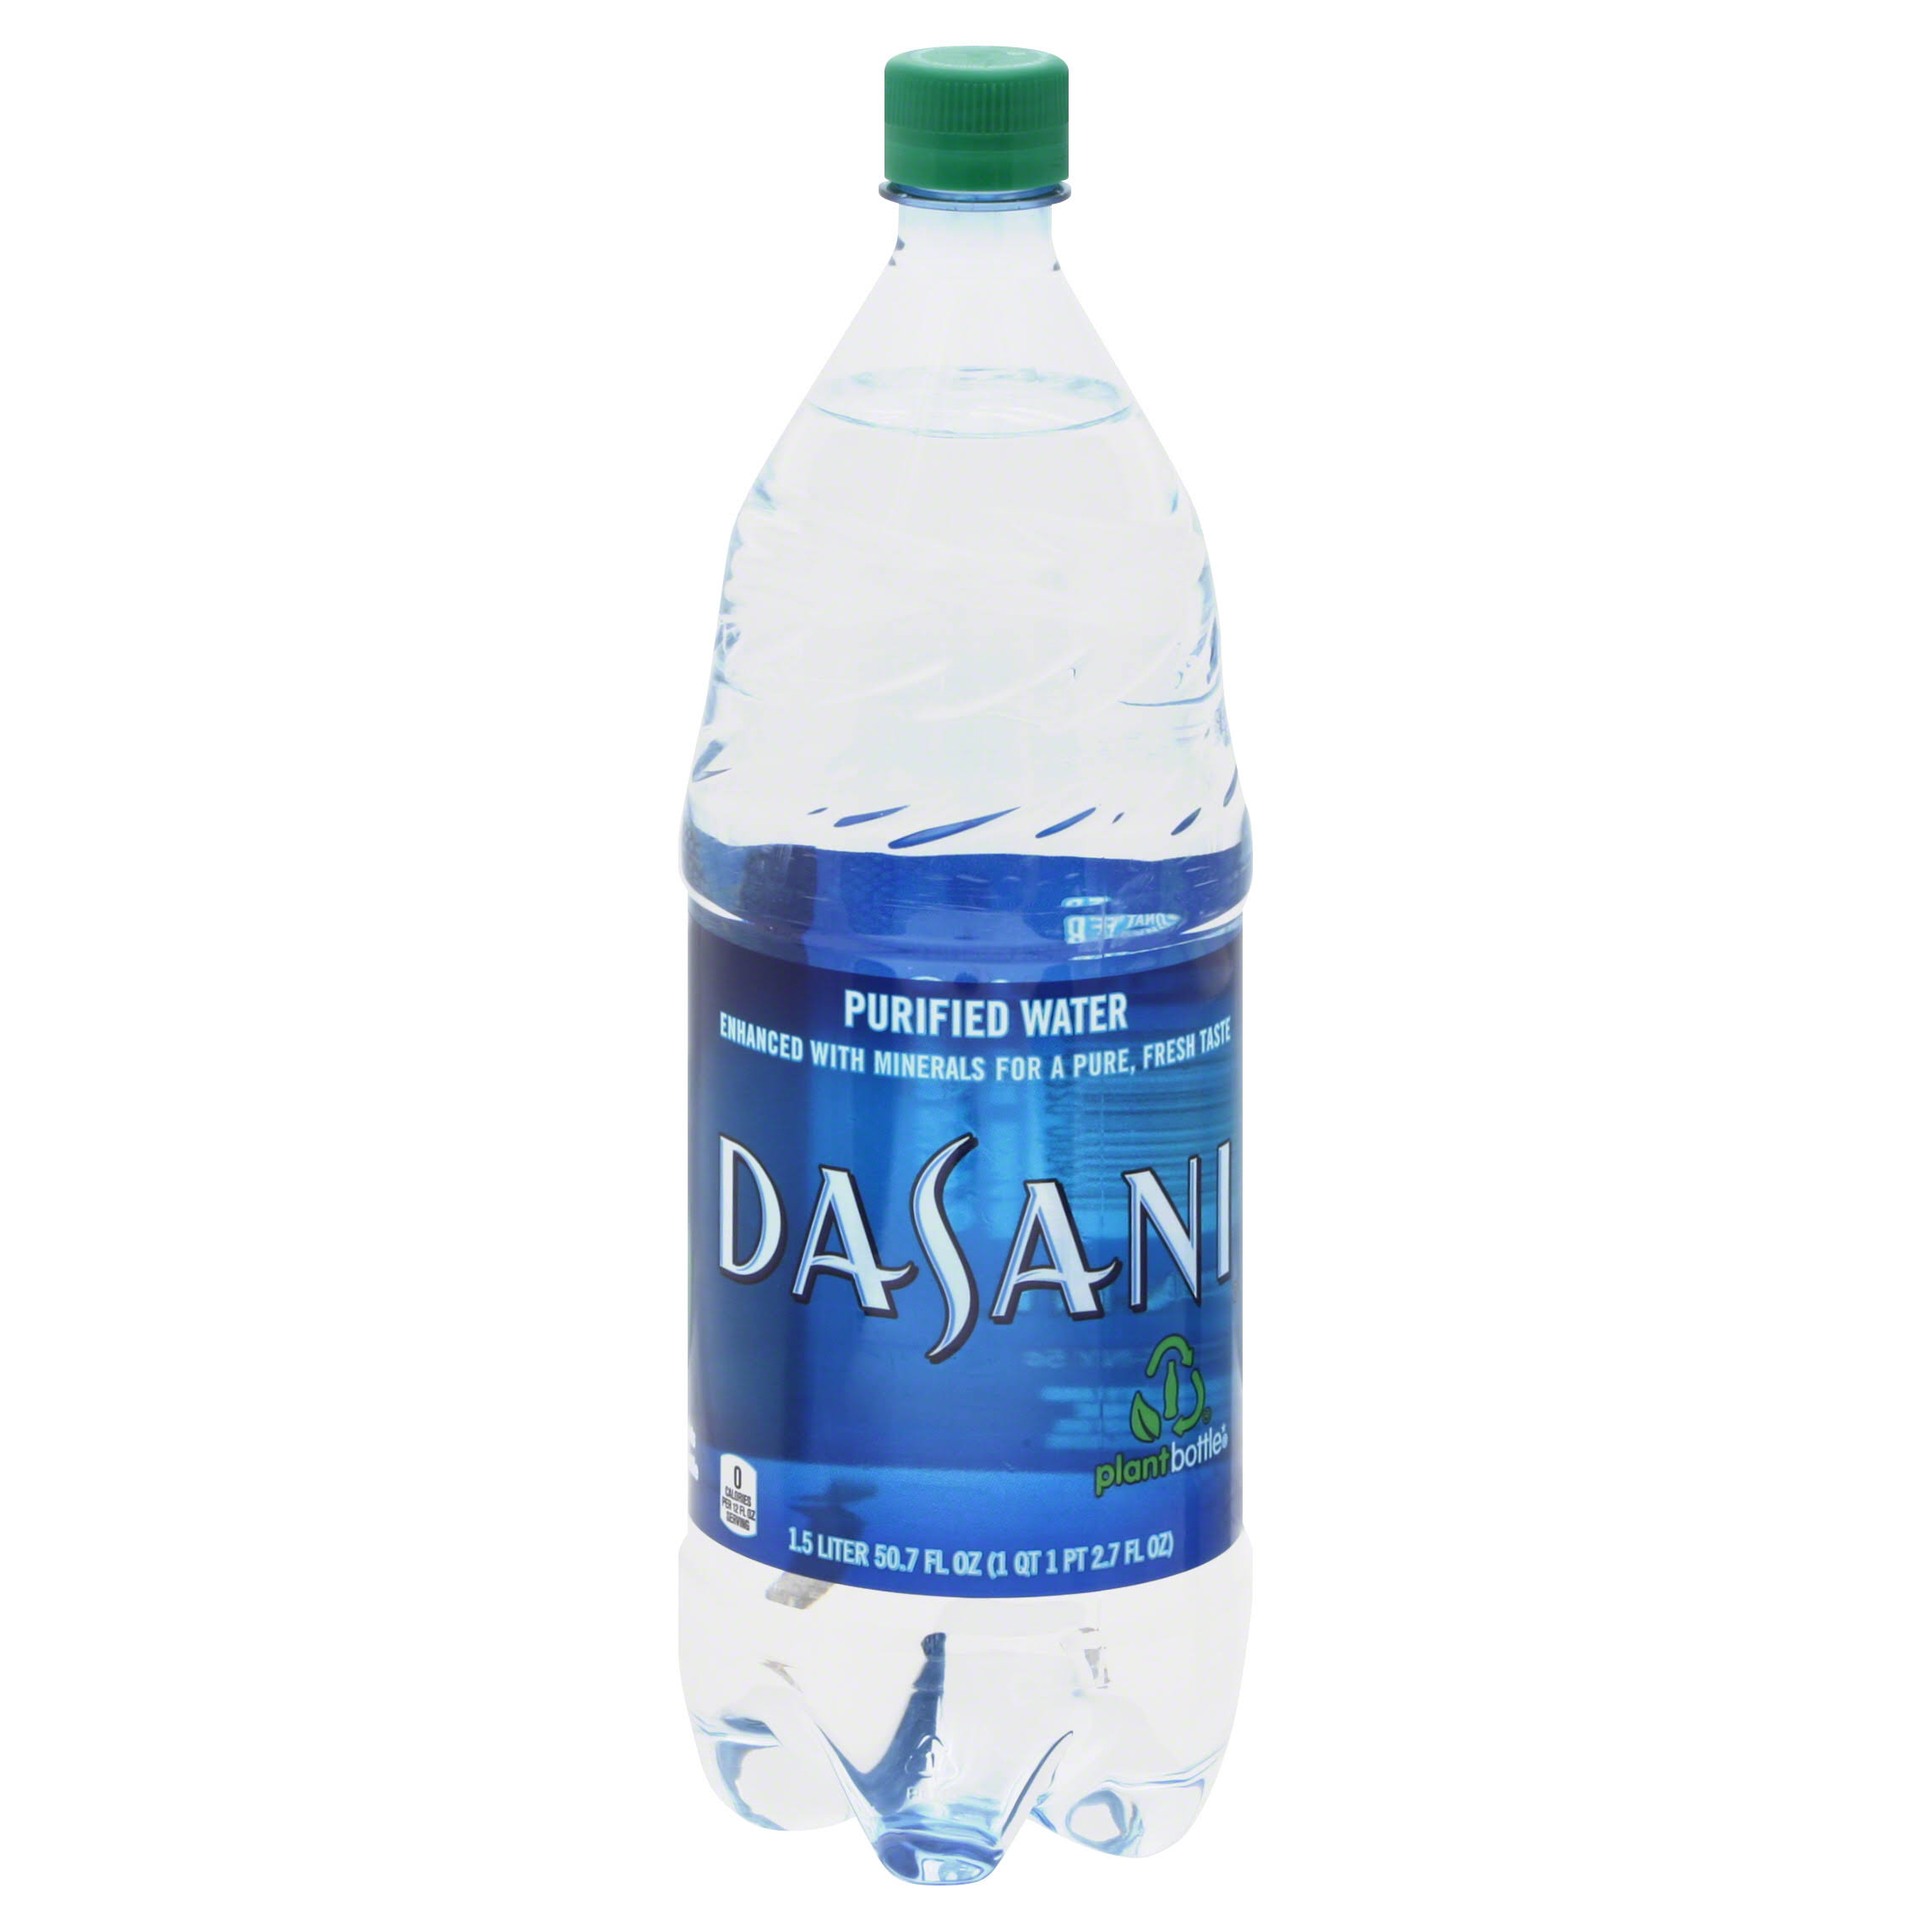 Dasani Purified Water - 1.5L